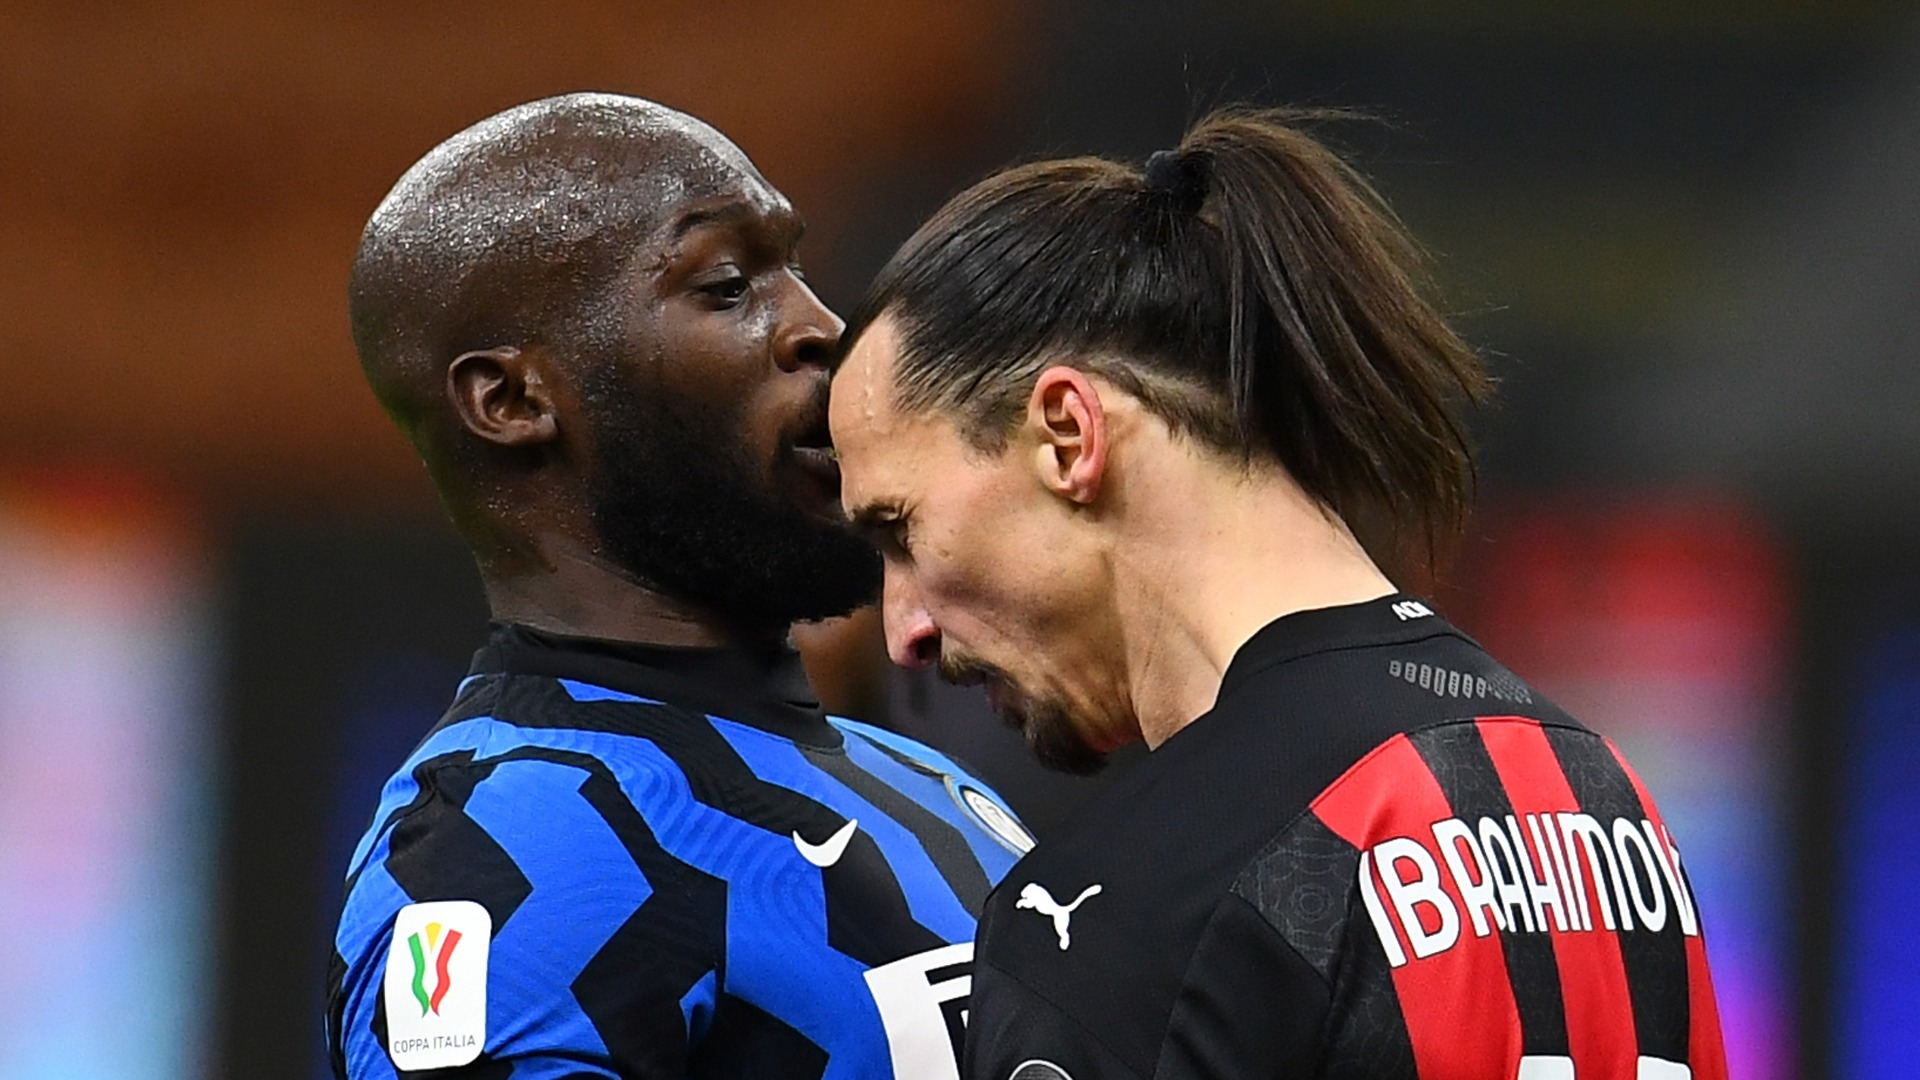 Conte glad as Lukaku shows anger after Ibrahimovic outburst